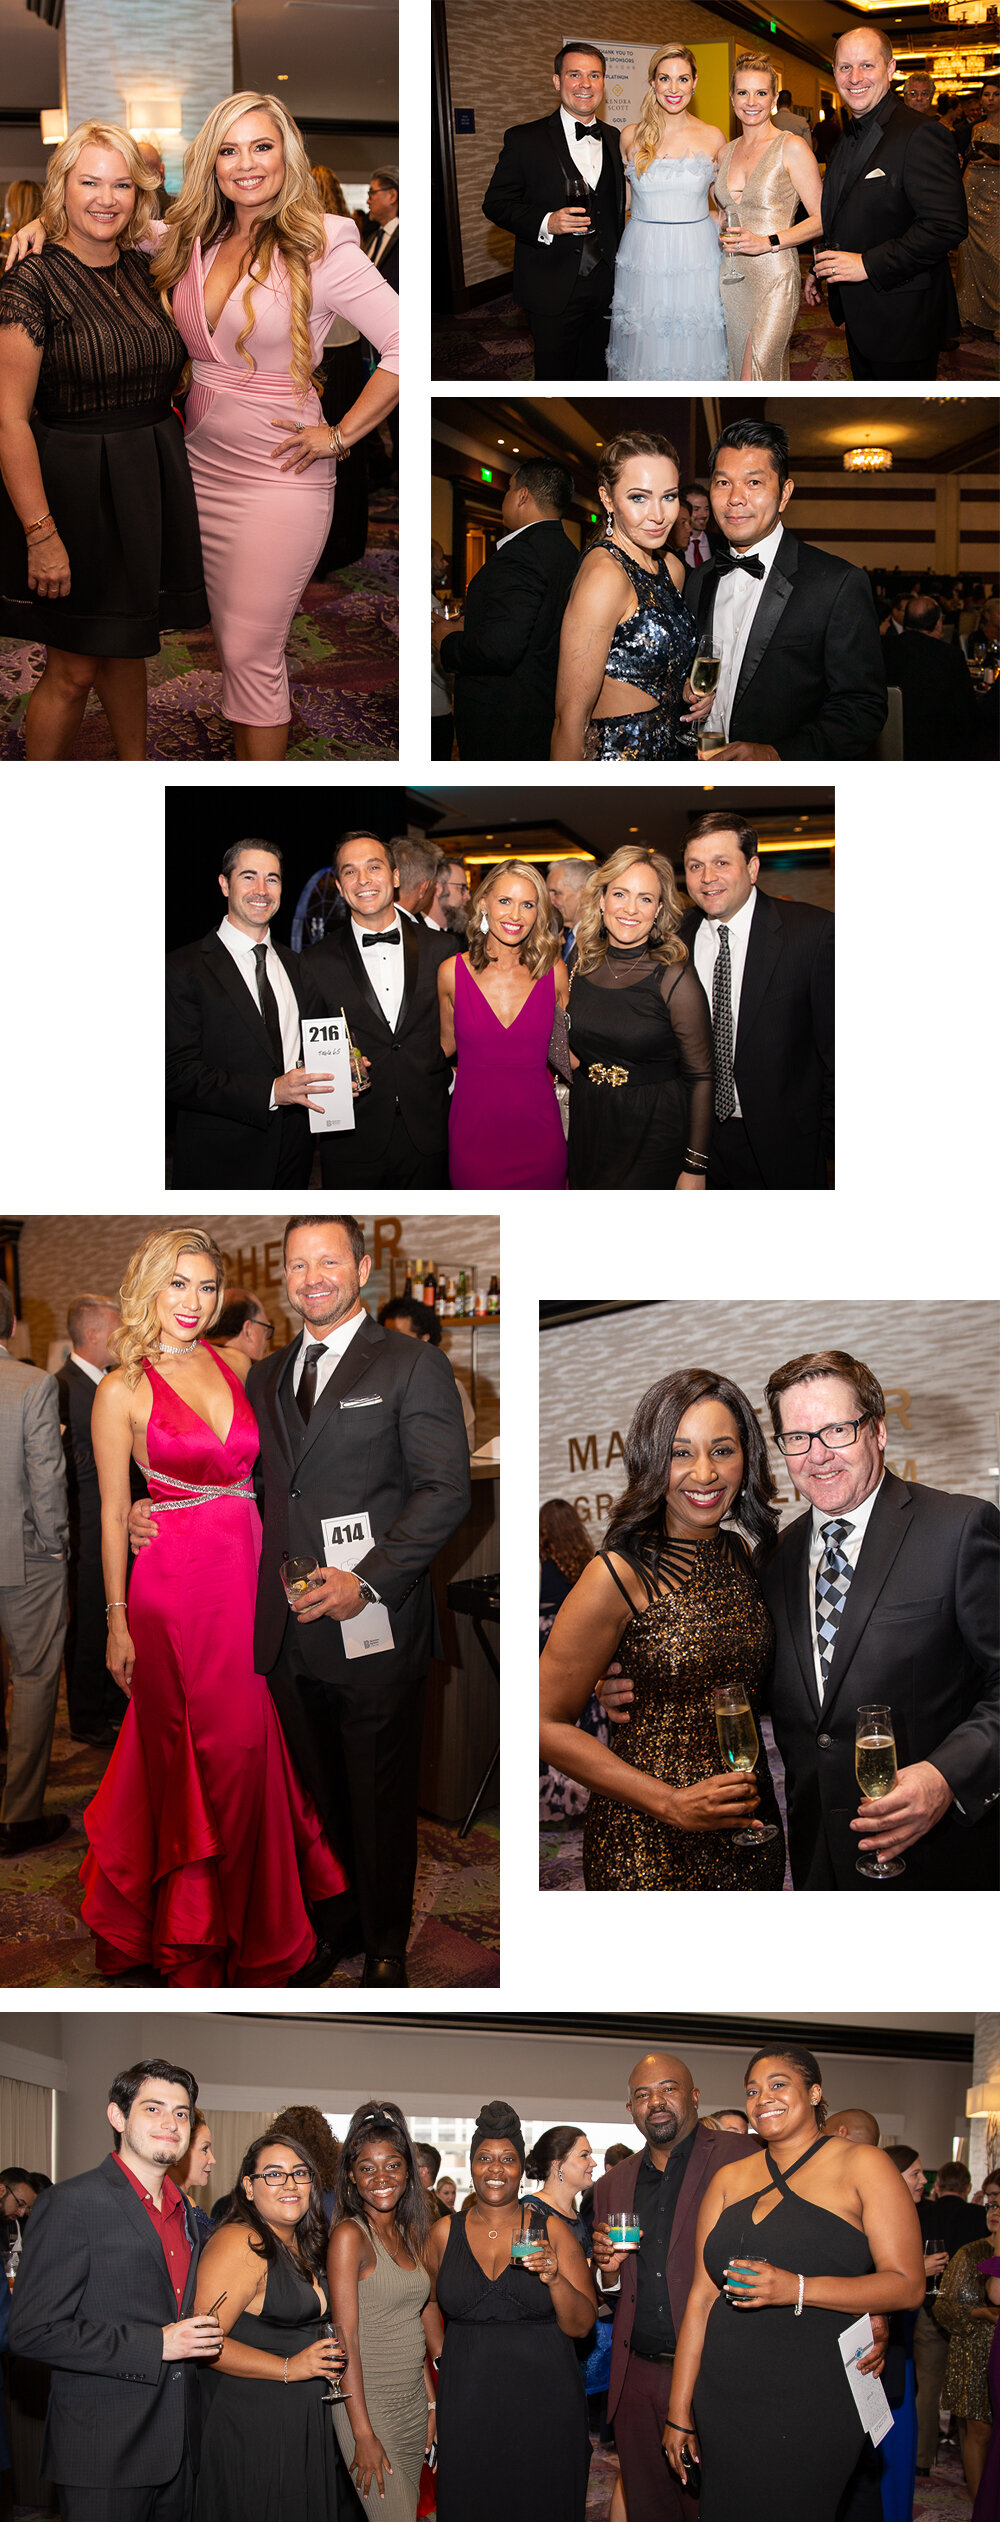 Guests at the Big Brothers Big Sisters annual Ice Ball Gala at the Fairmont Hotel in Austin, Texas. Photos by Erin Reas local event photographer.